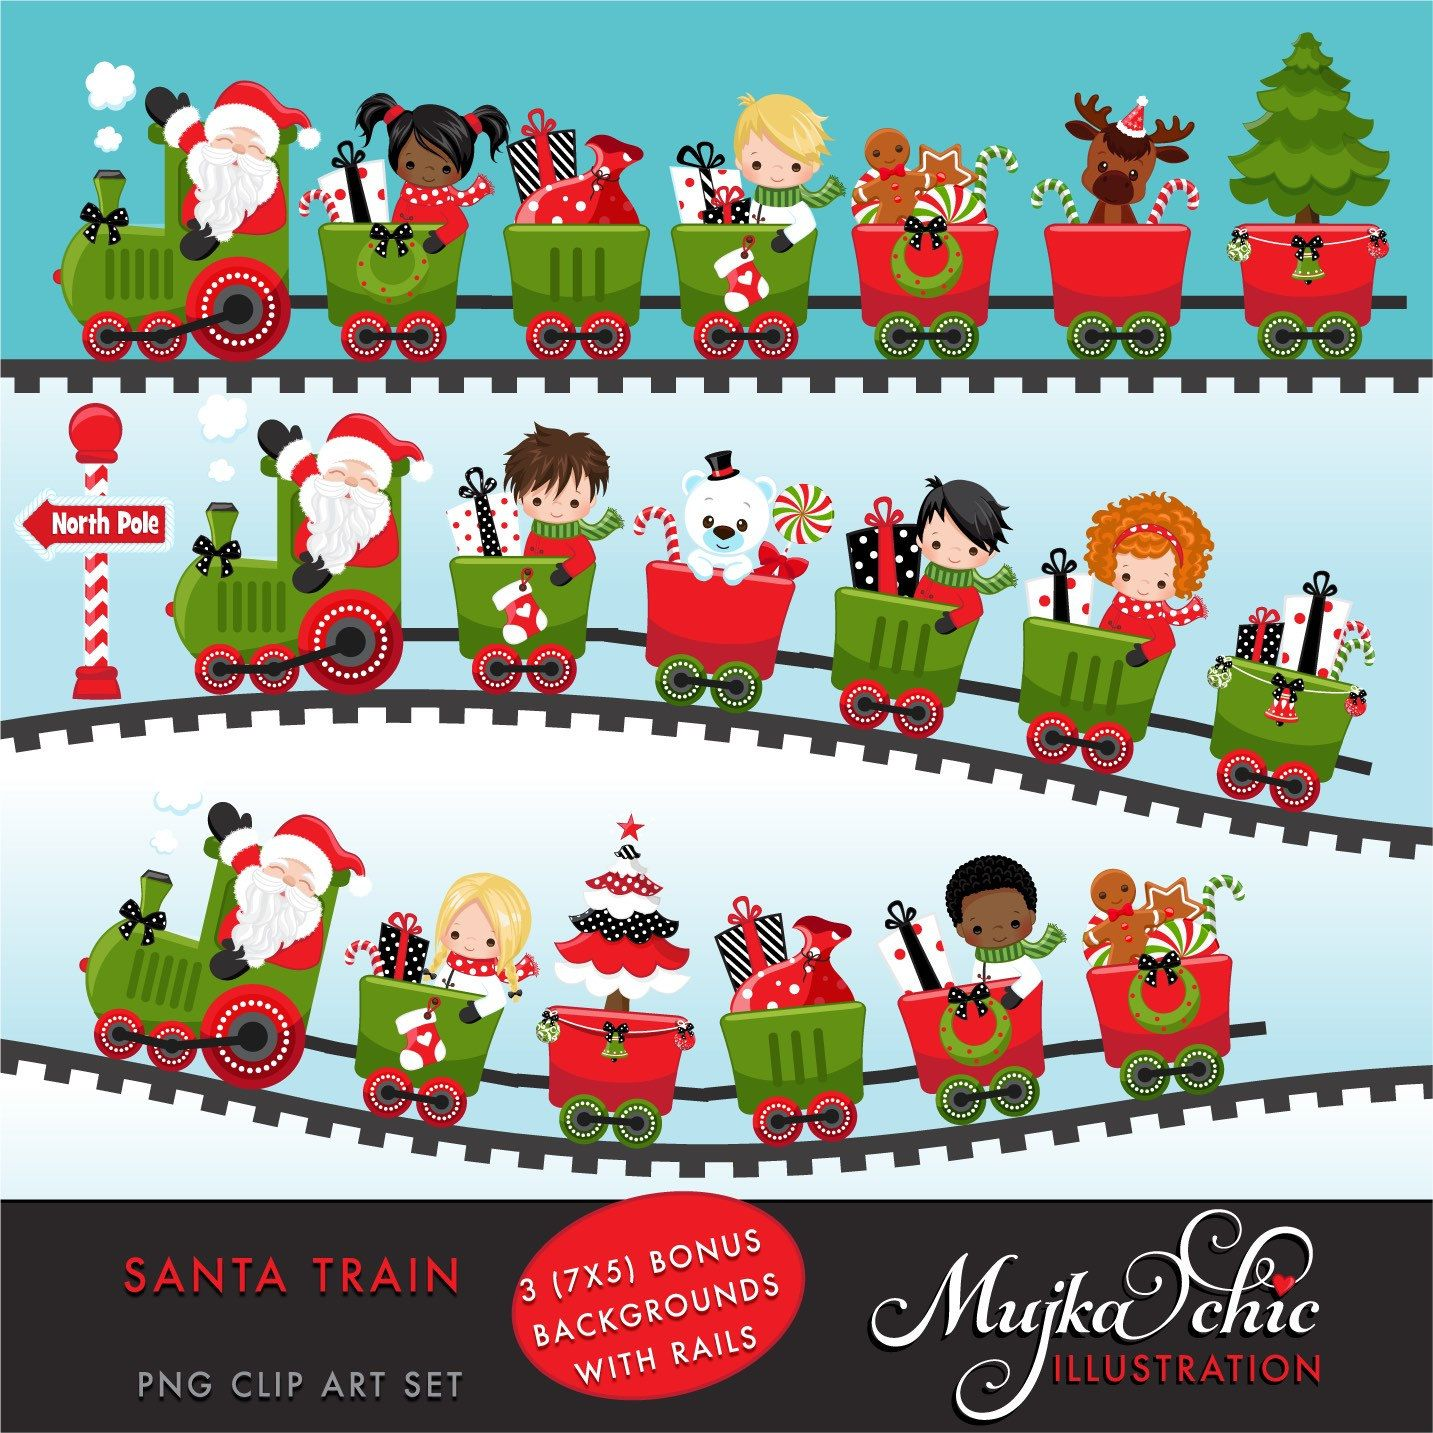 hight resolution of supercute santa train clipart set for all your personal and commercial projects boy girl versions include different graphics